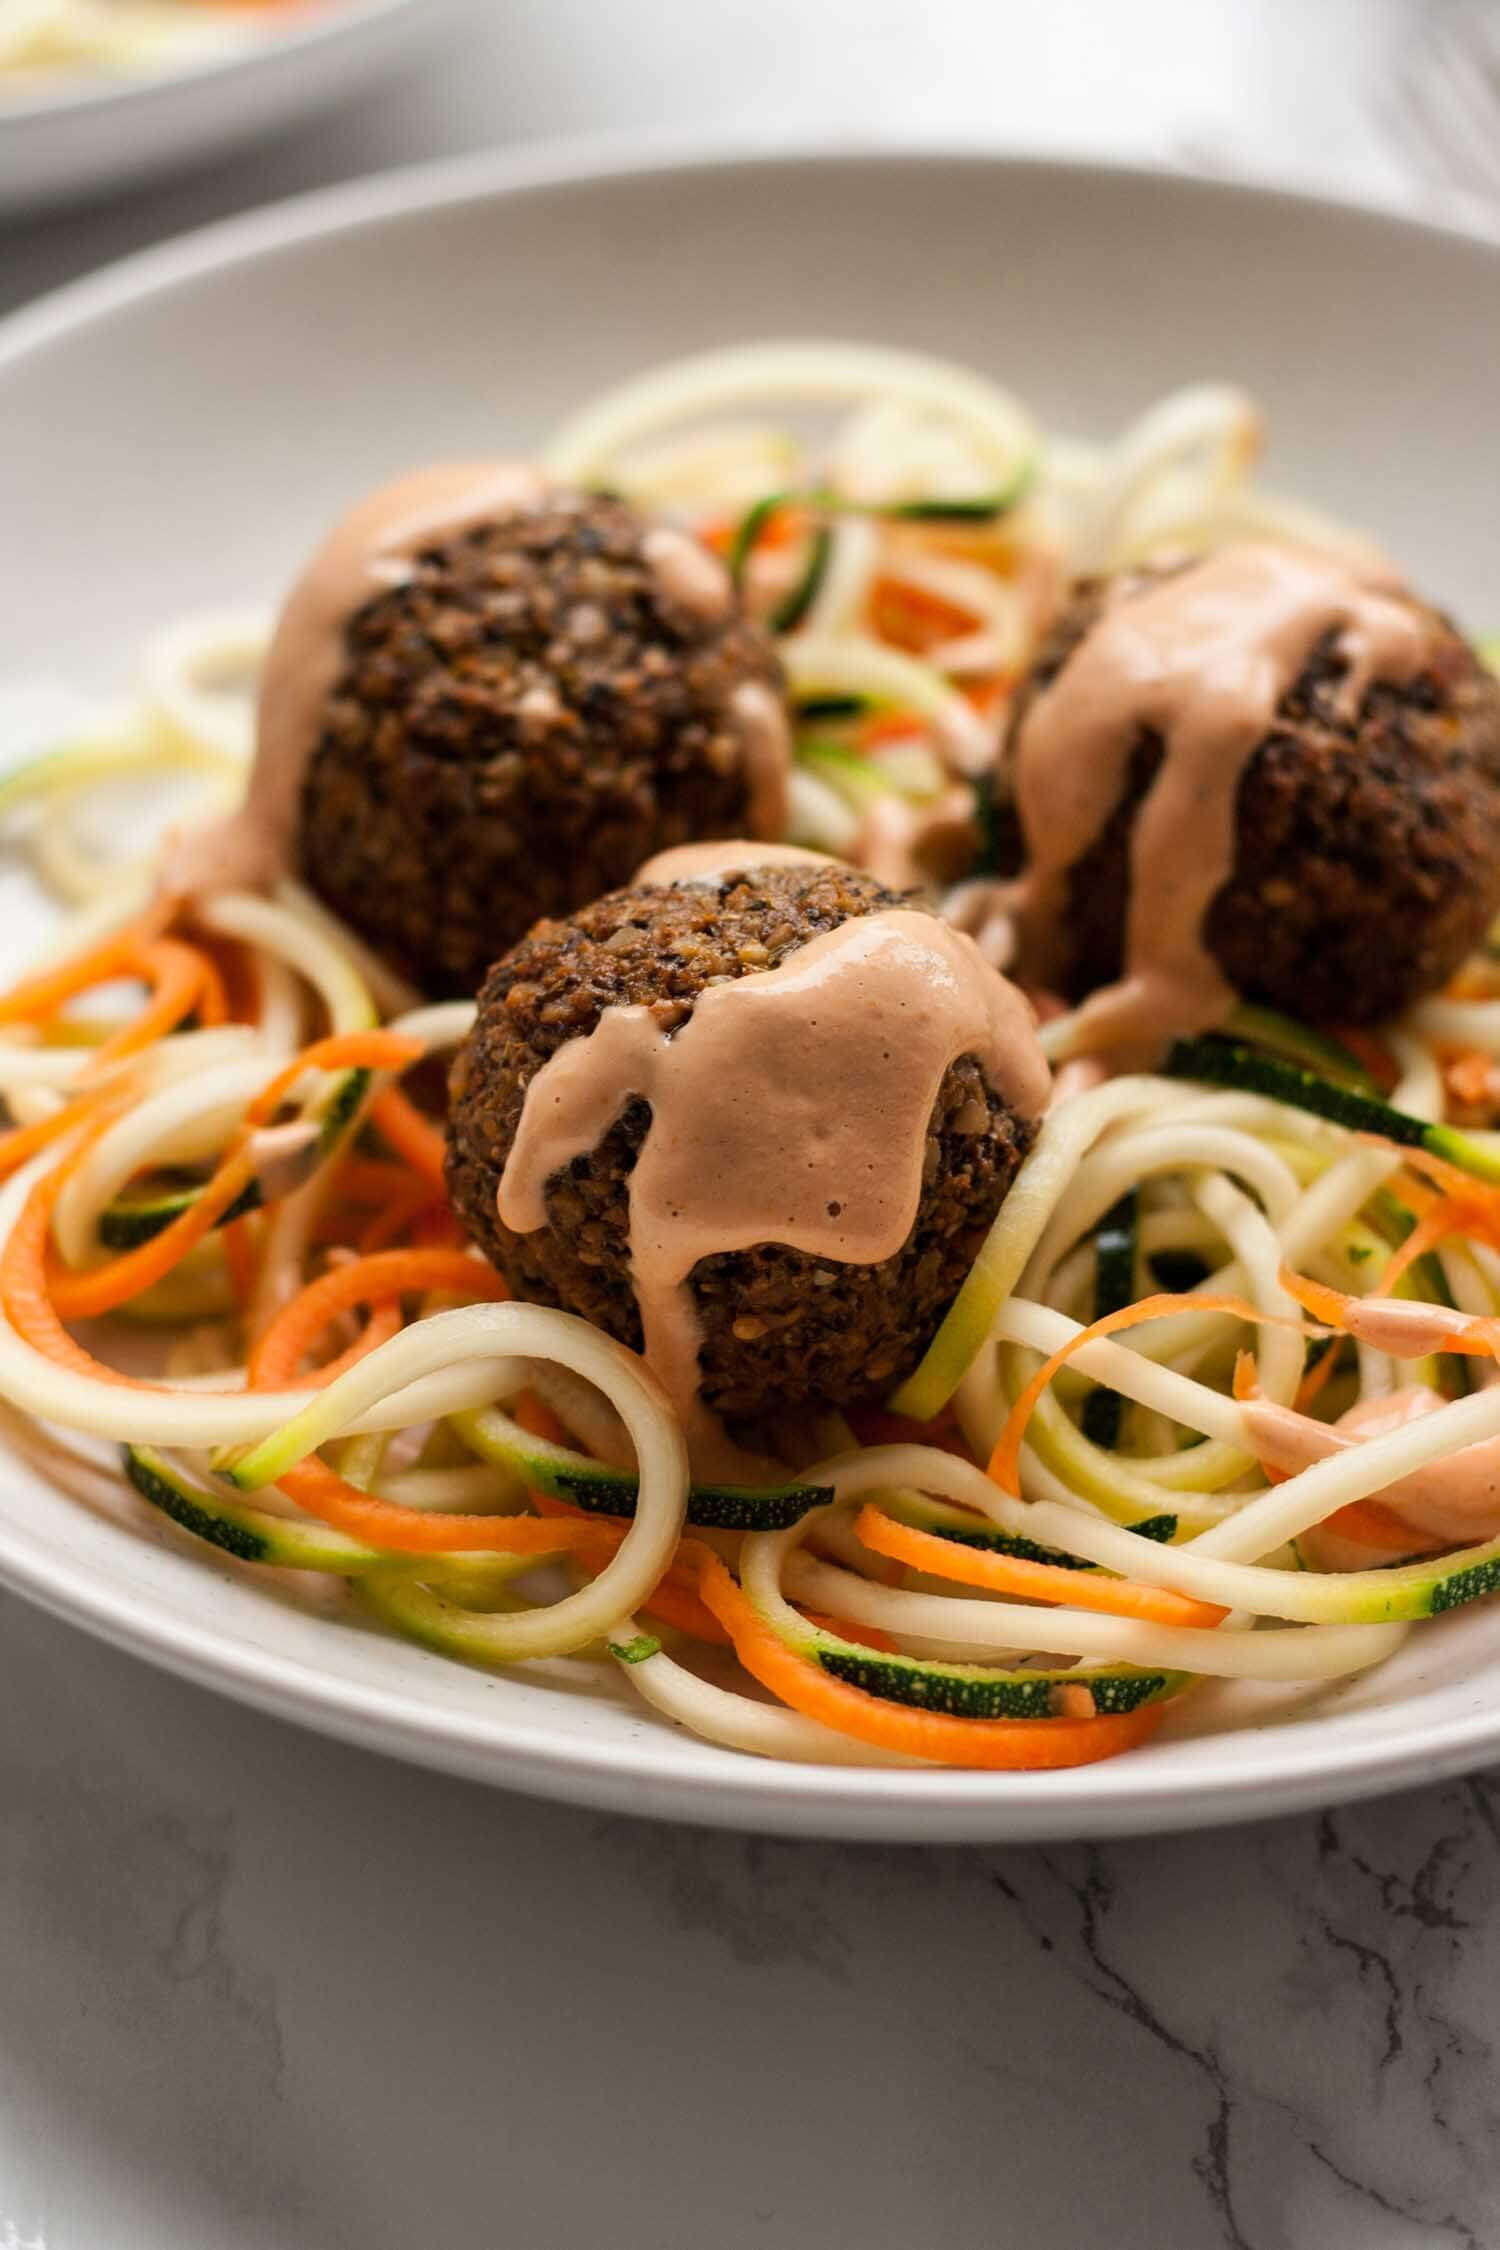 Vegan Meatballs with Creamy Sun-dried Tomato Sauce - these deliciously satisfying vegan meatballs make a perfect packed lunch served with spiralized veggies and a simple vegan sauce! | eatloveeats.com